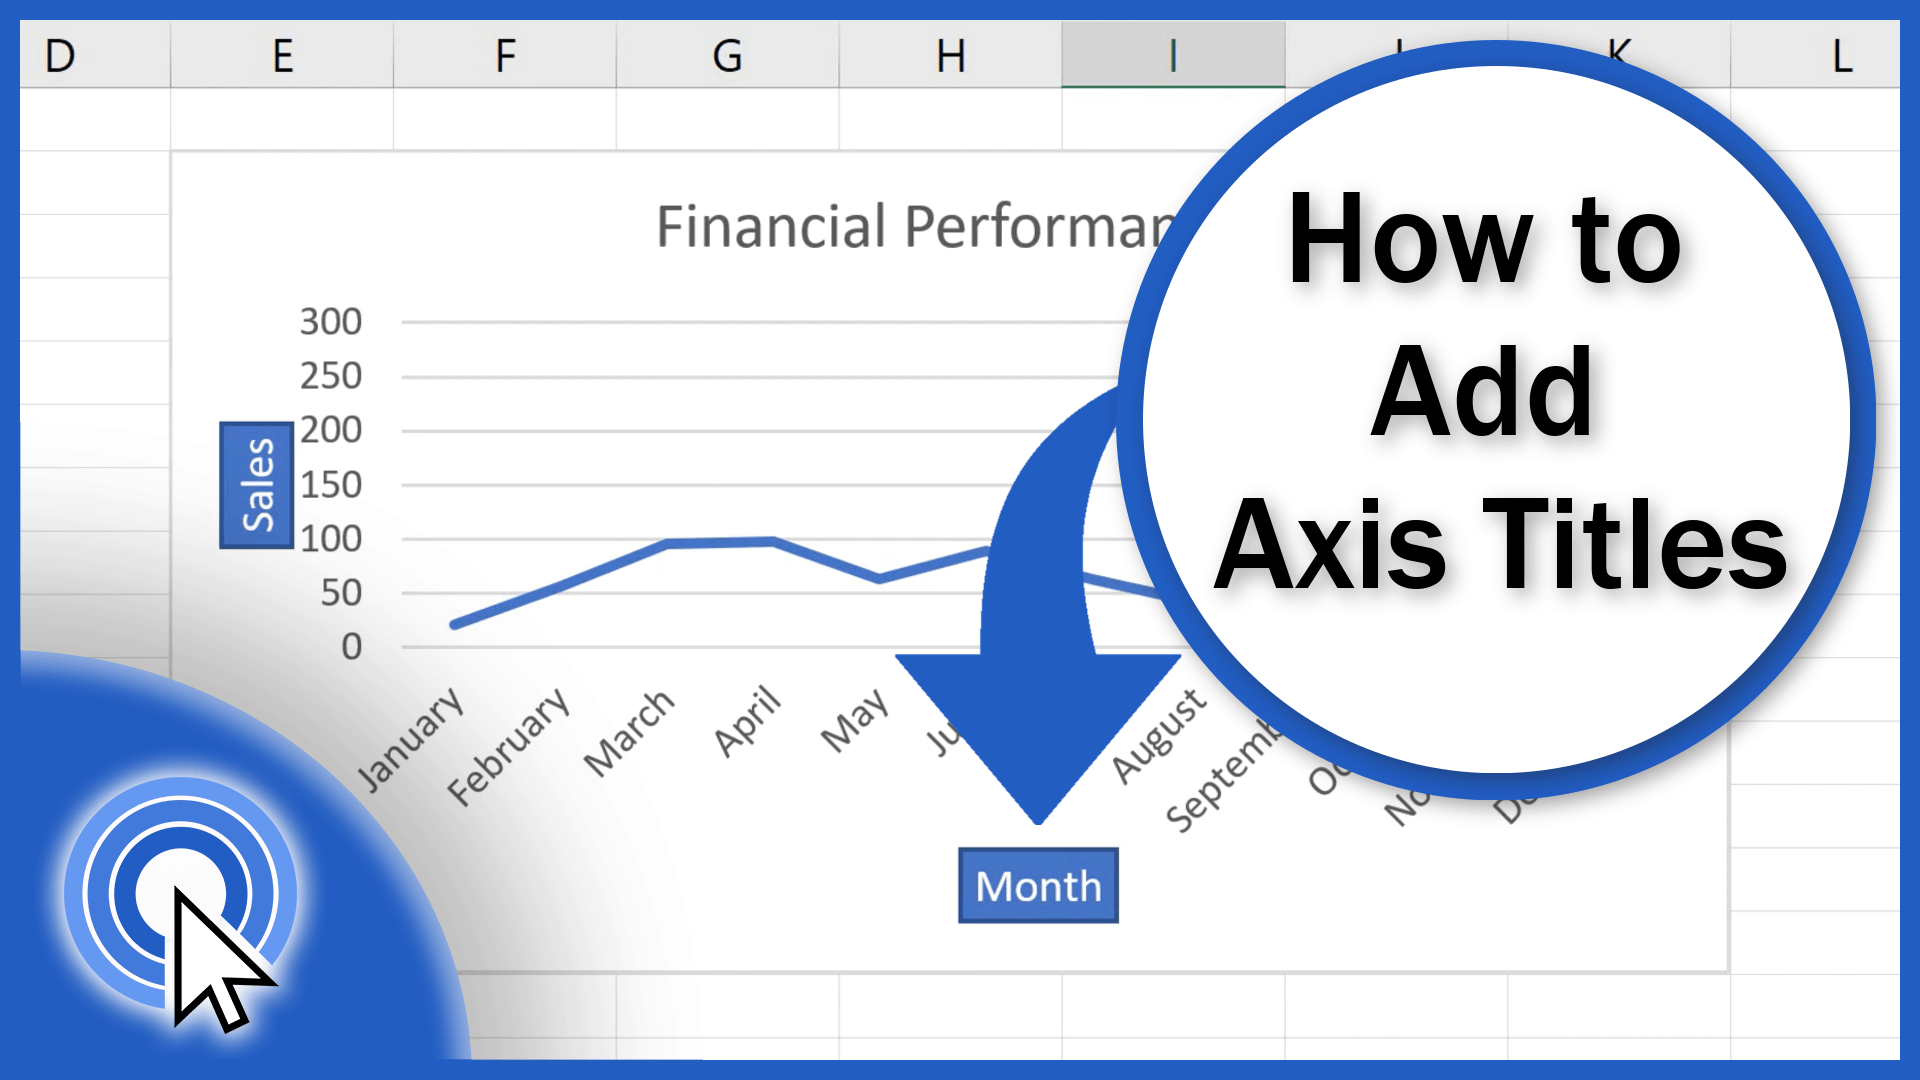 How to Add Axis Titles in Excel